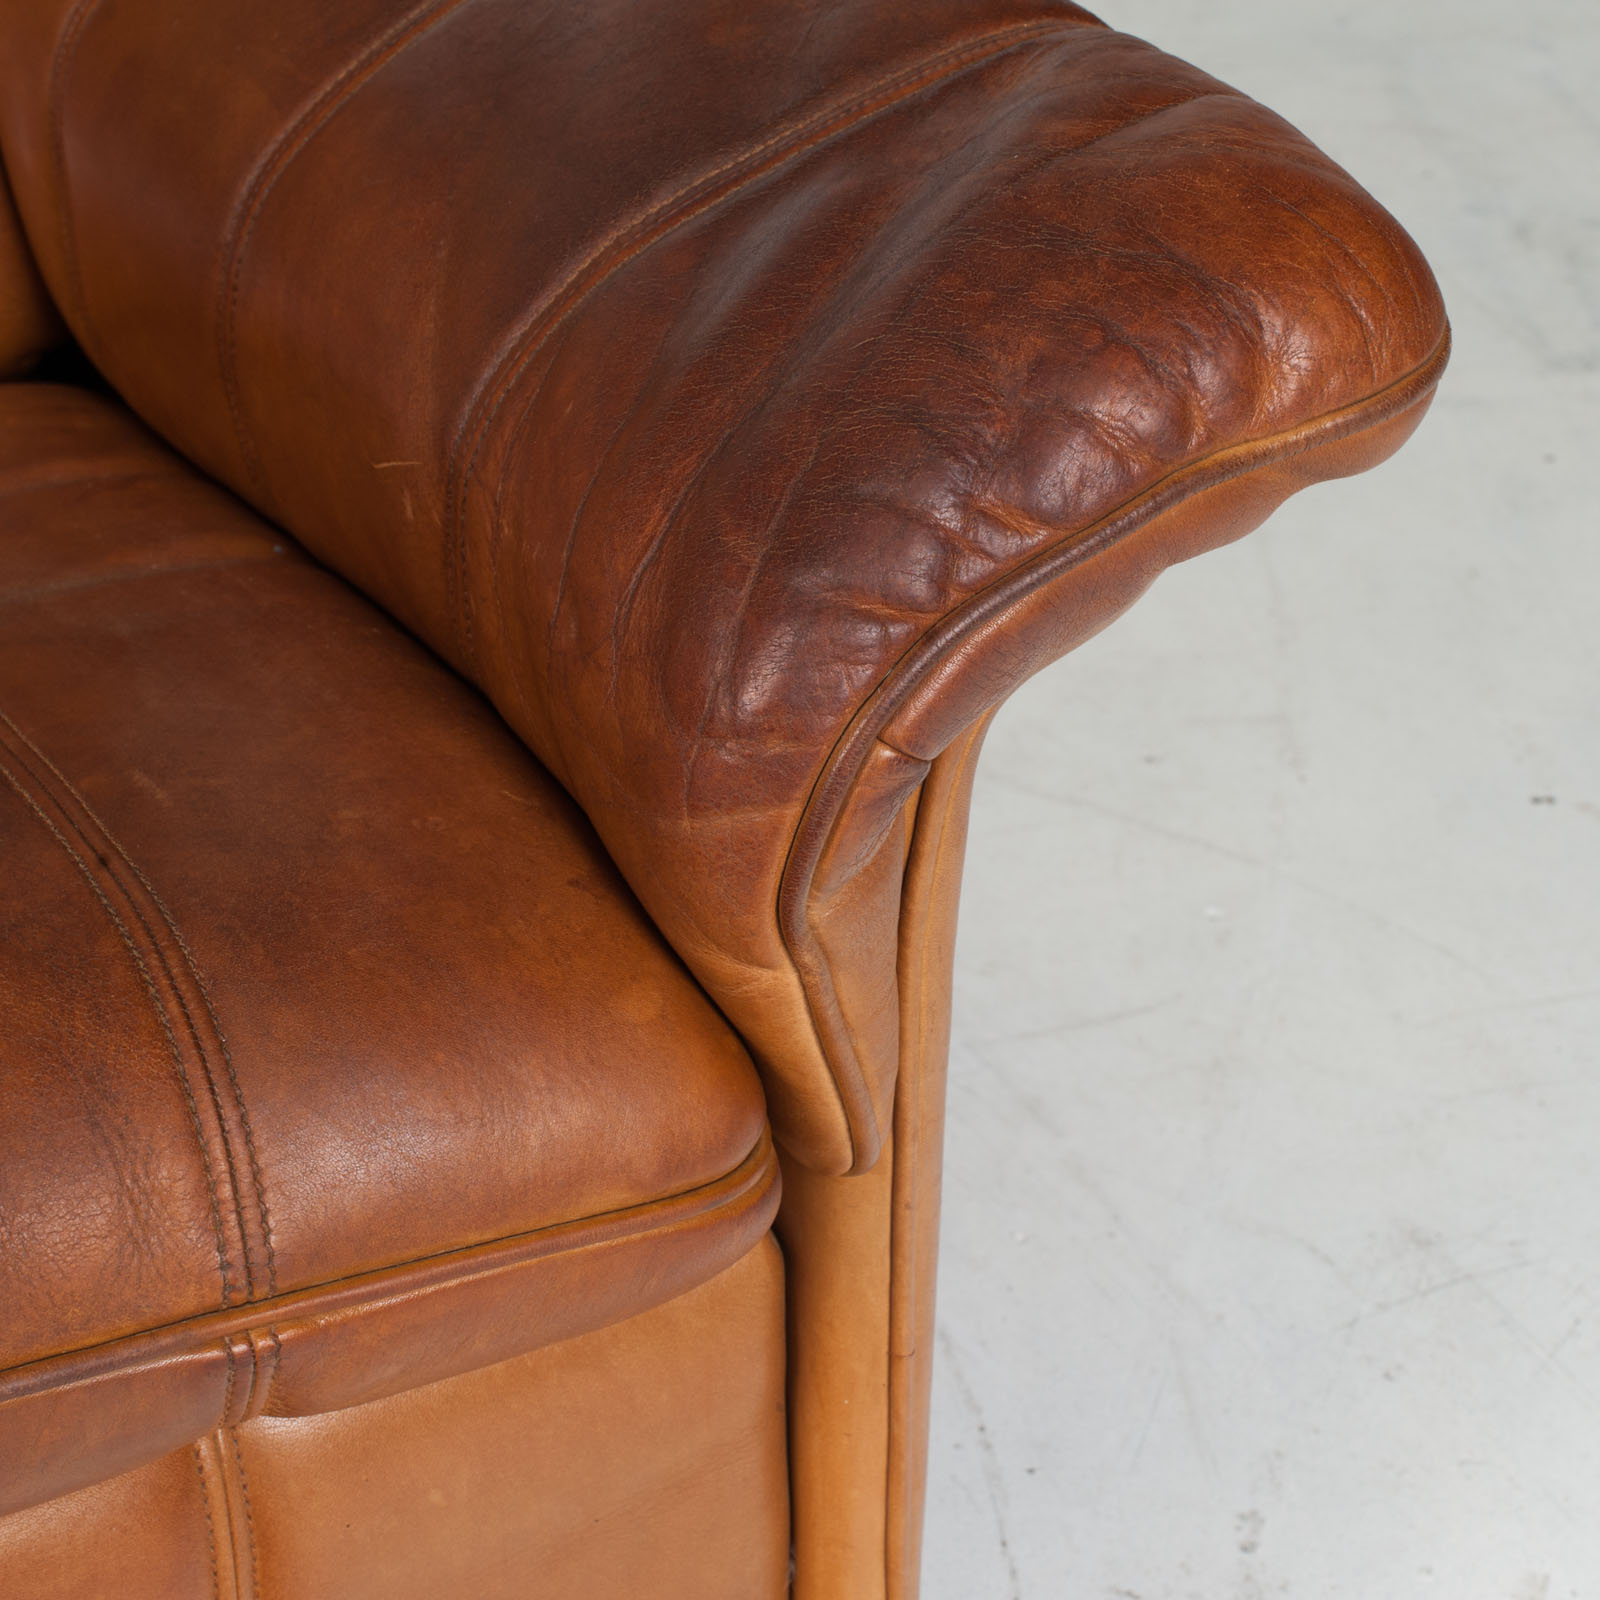 2 Seat Sofa By De Sede In Tan Leather 1970s Switzerland 10